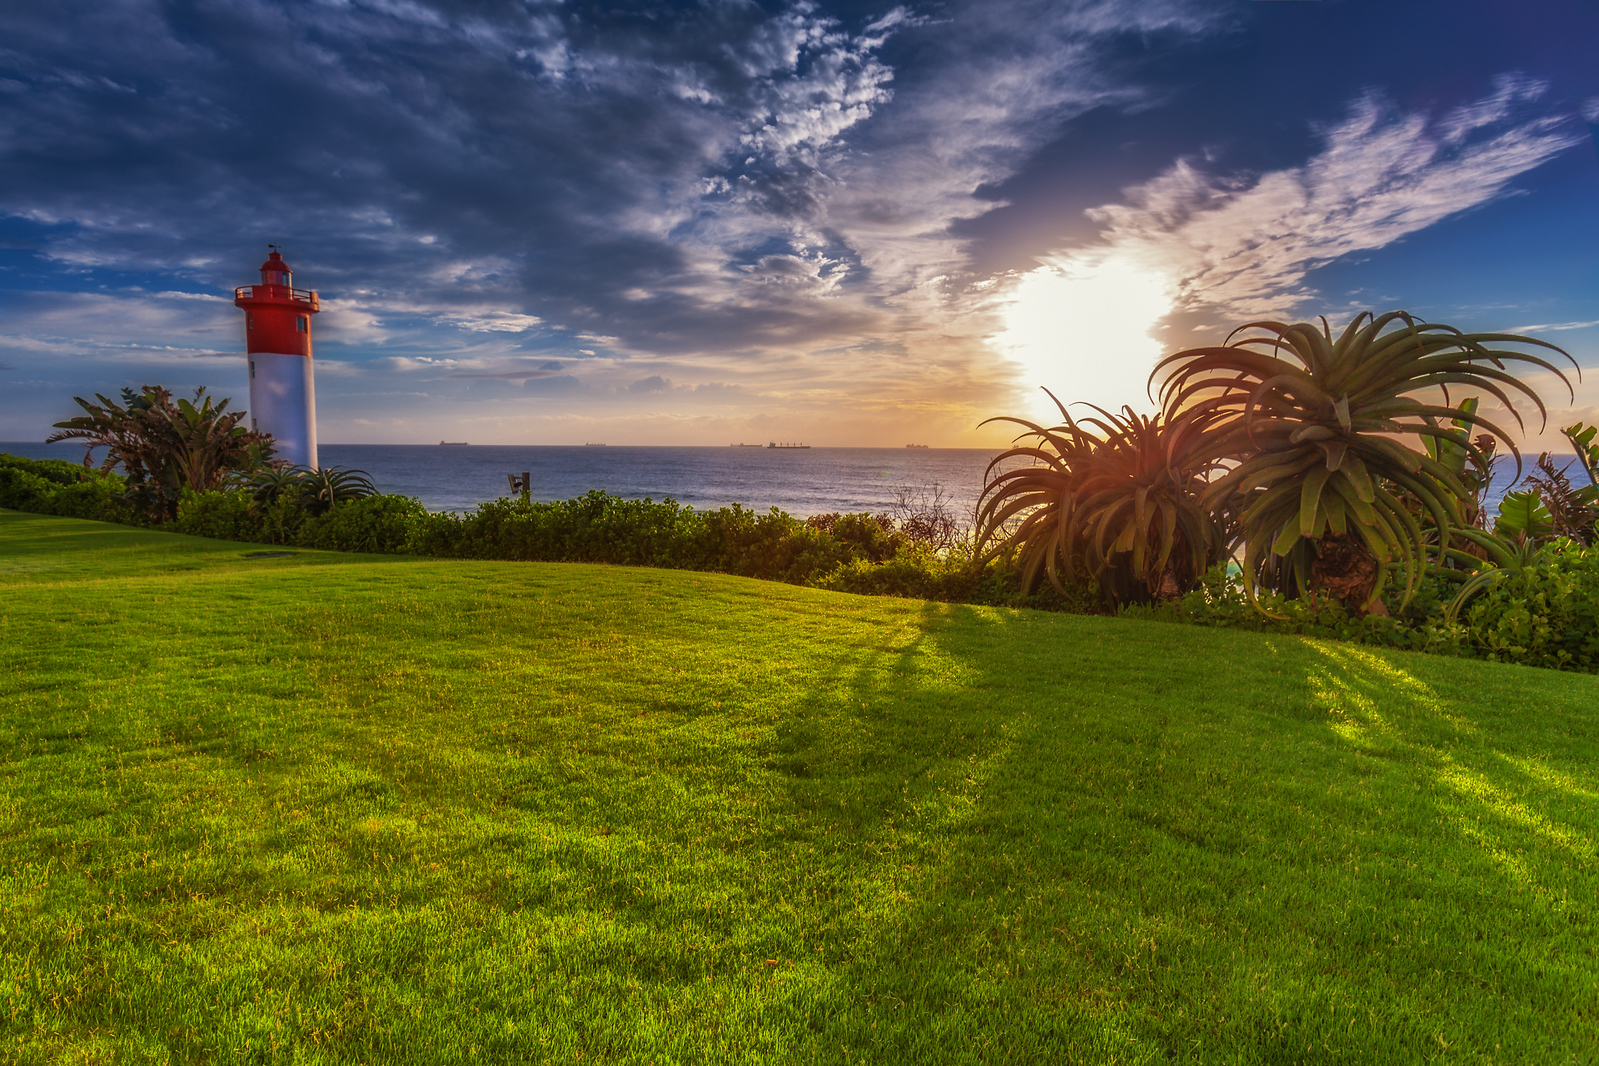 A magical view from Durban, South Africa